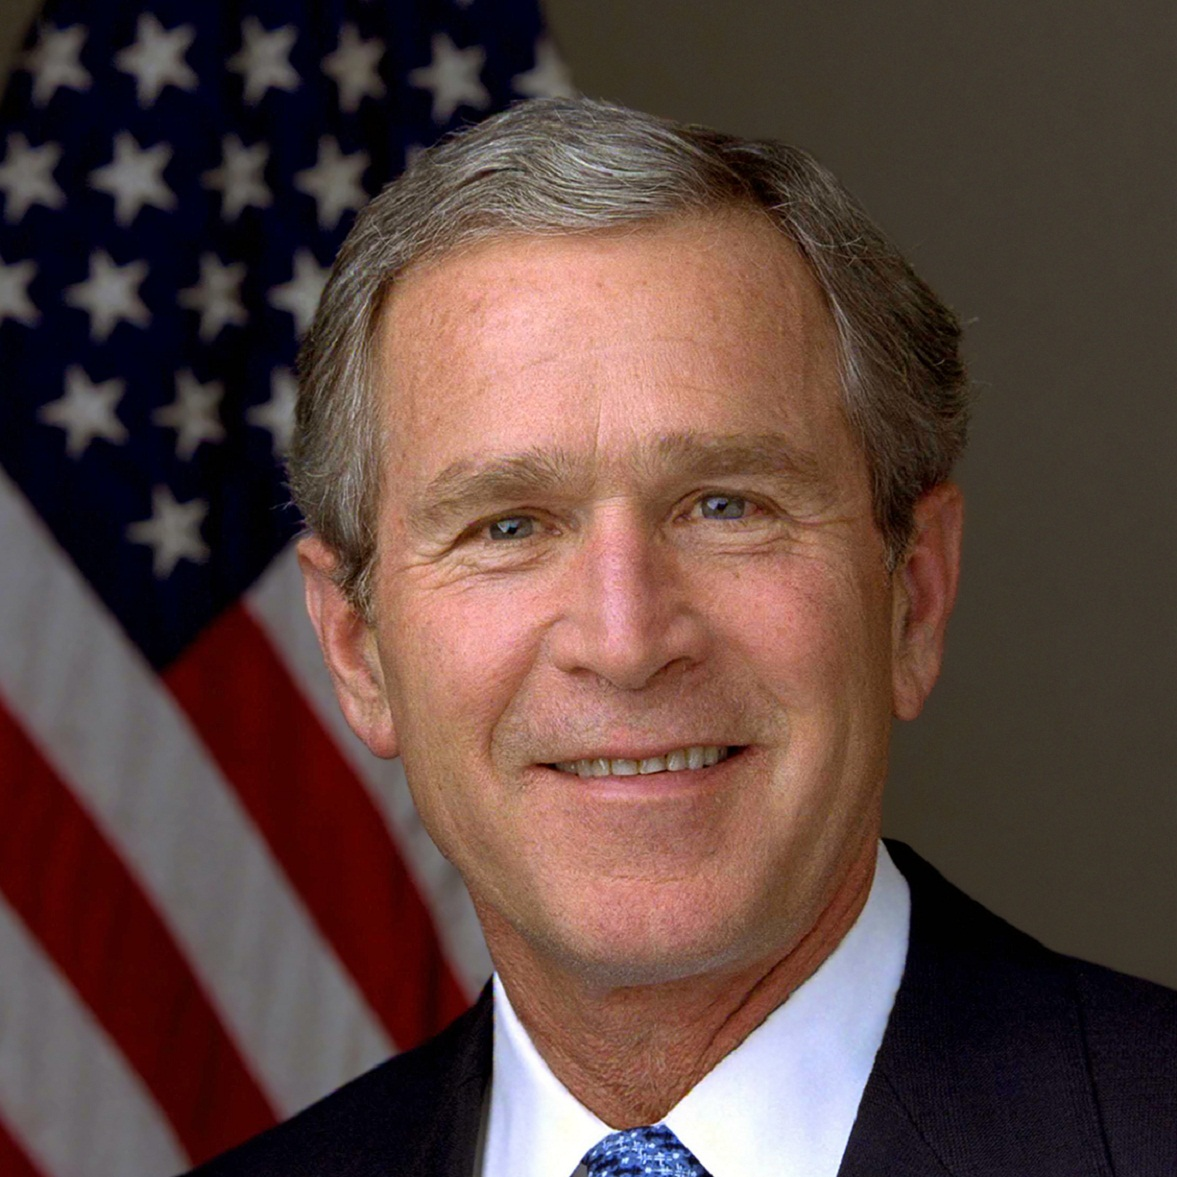 George Bush Net Worth